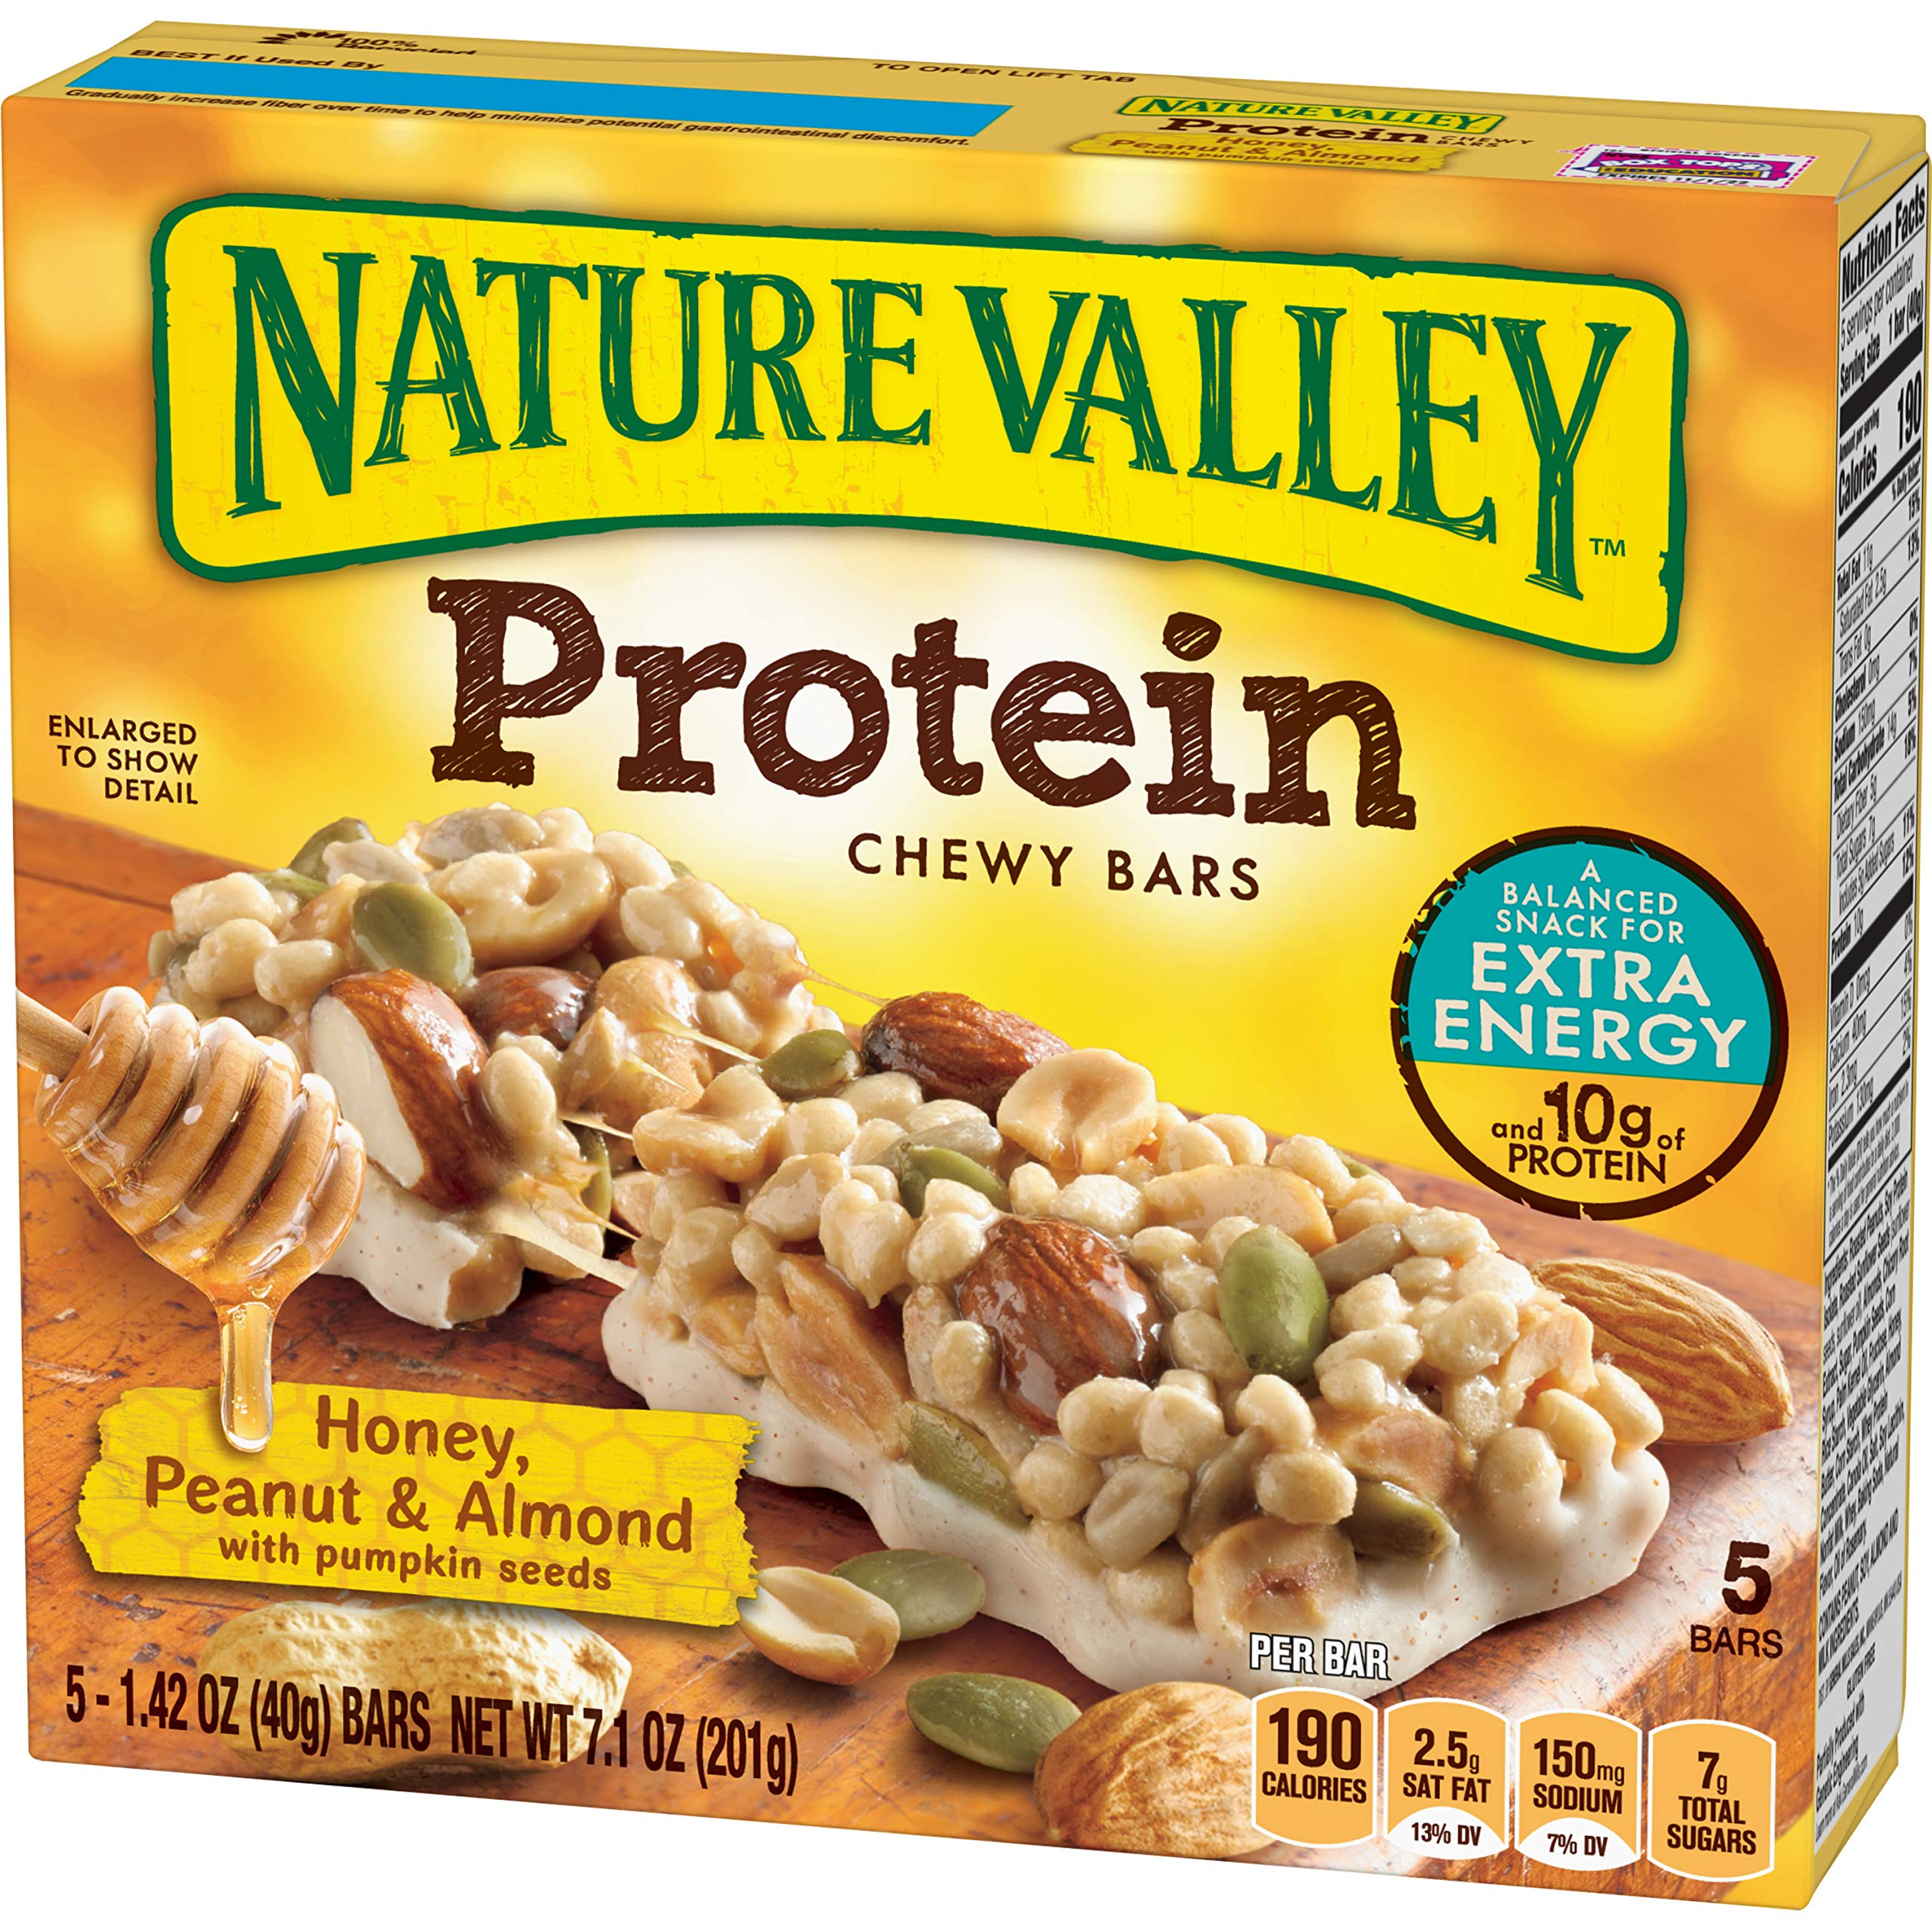 Nature Valley Protein Chewy Bar, Honey, Peanut & Almond with Seeds, 5 Count (Pack of 12)